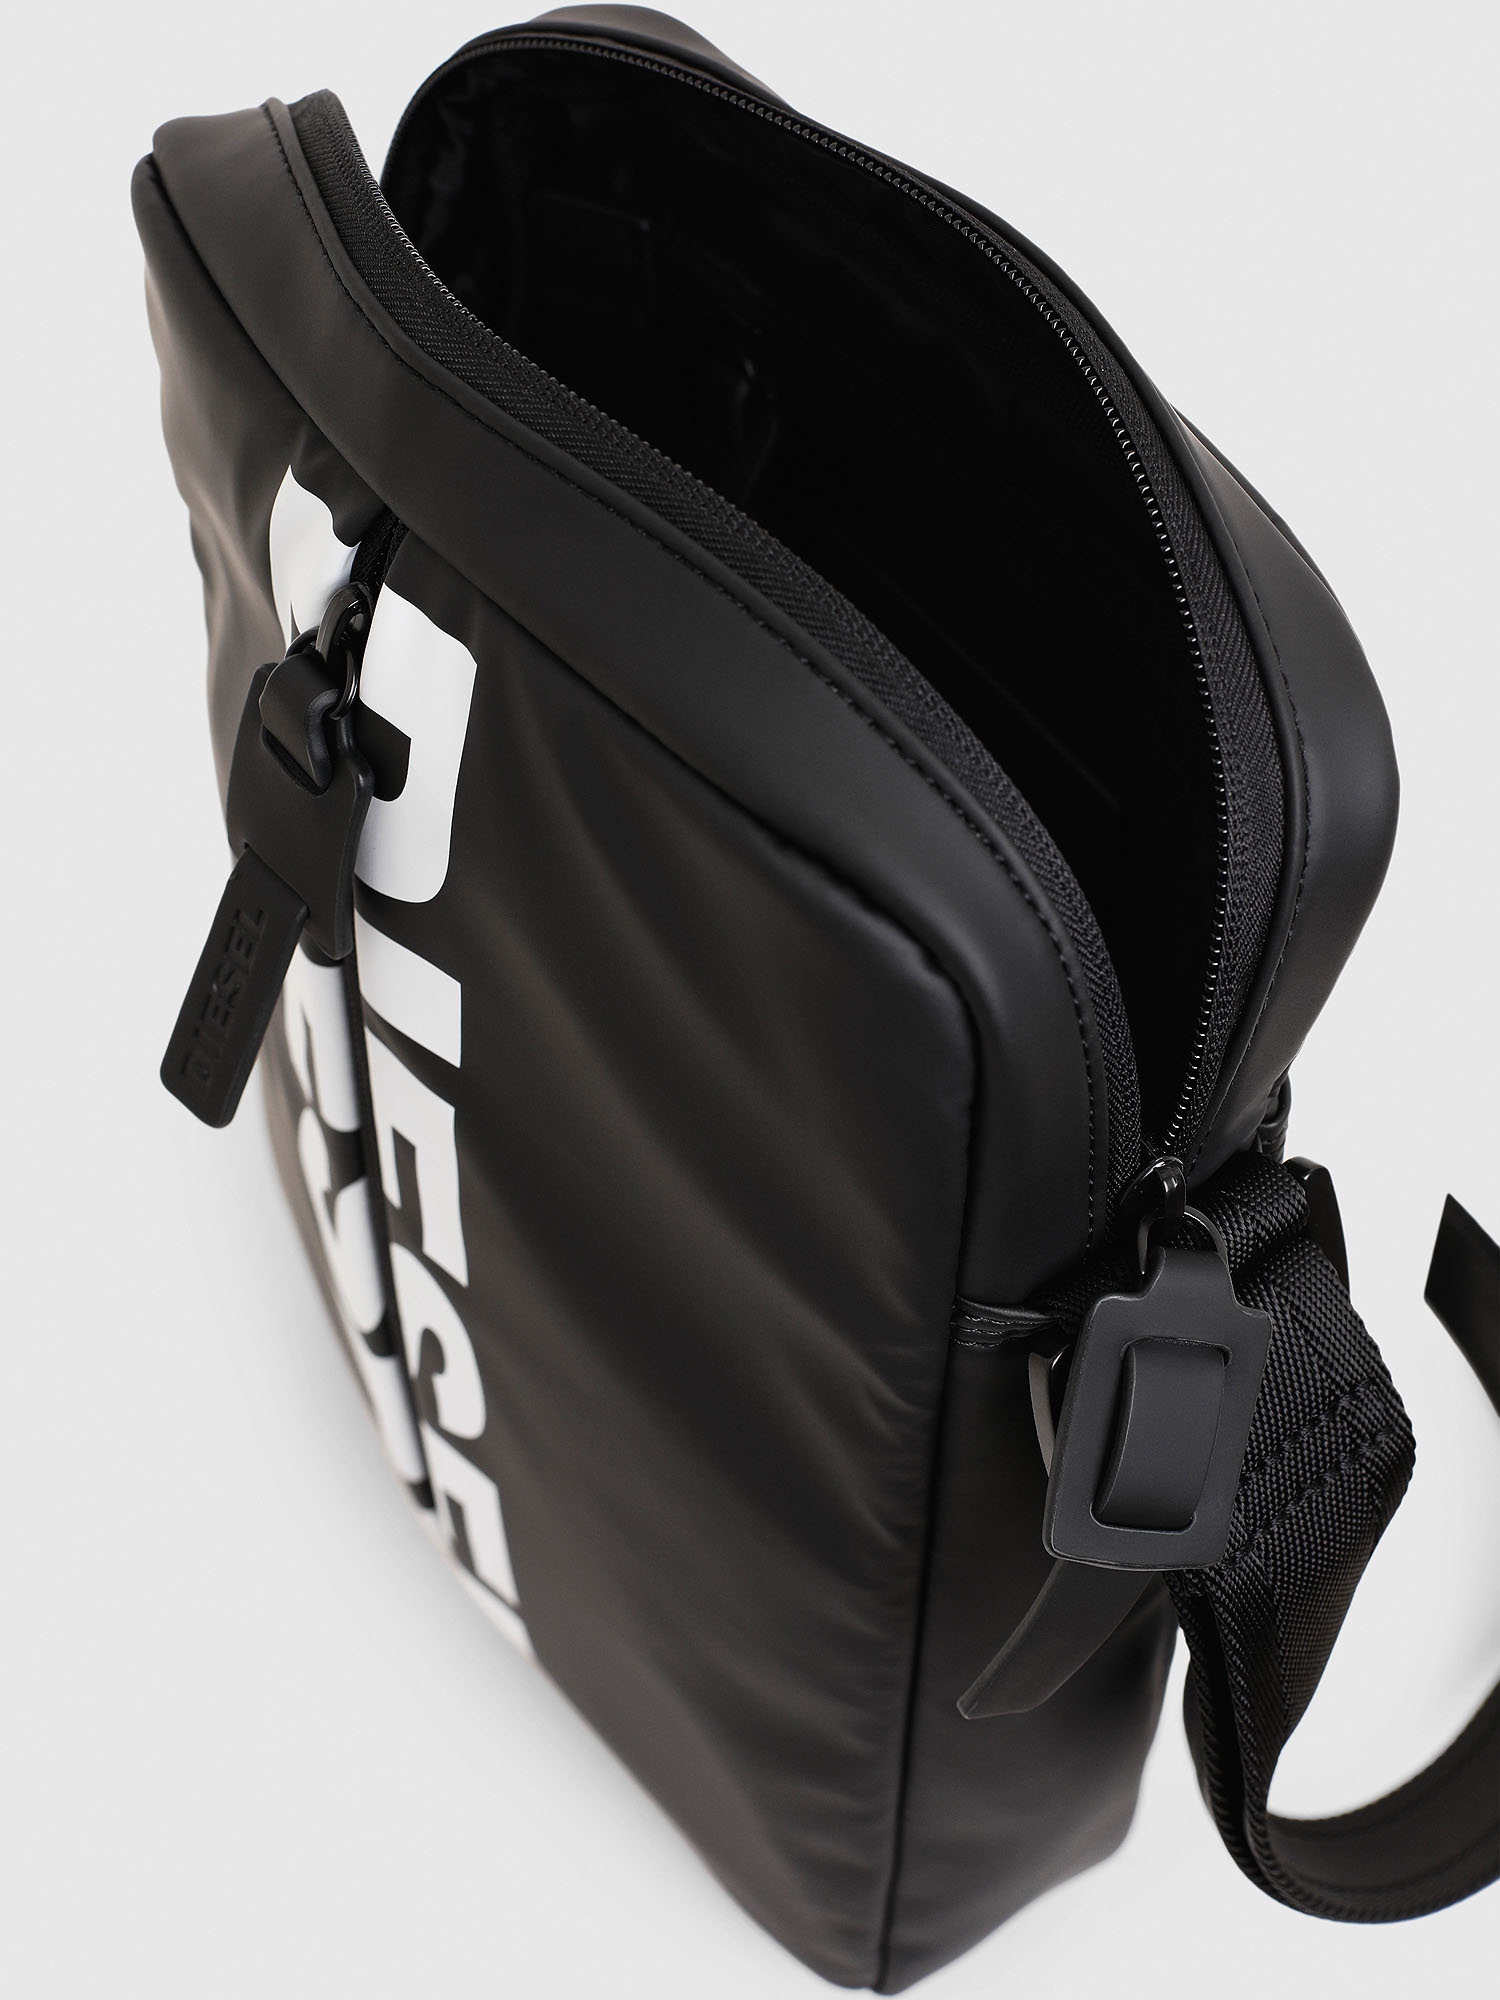 Diesel - F-BOLD SMALL CROSS,  - Bolso cruzados - Image 5